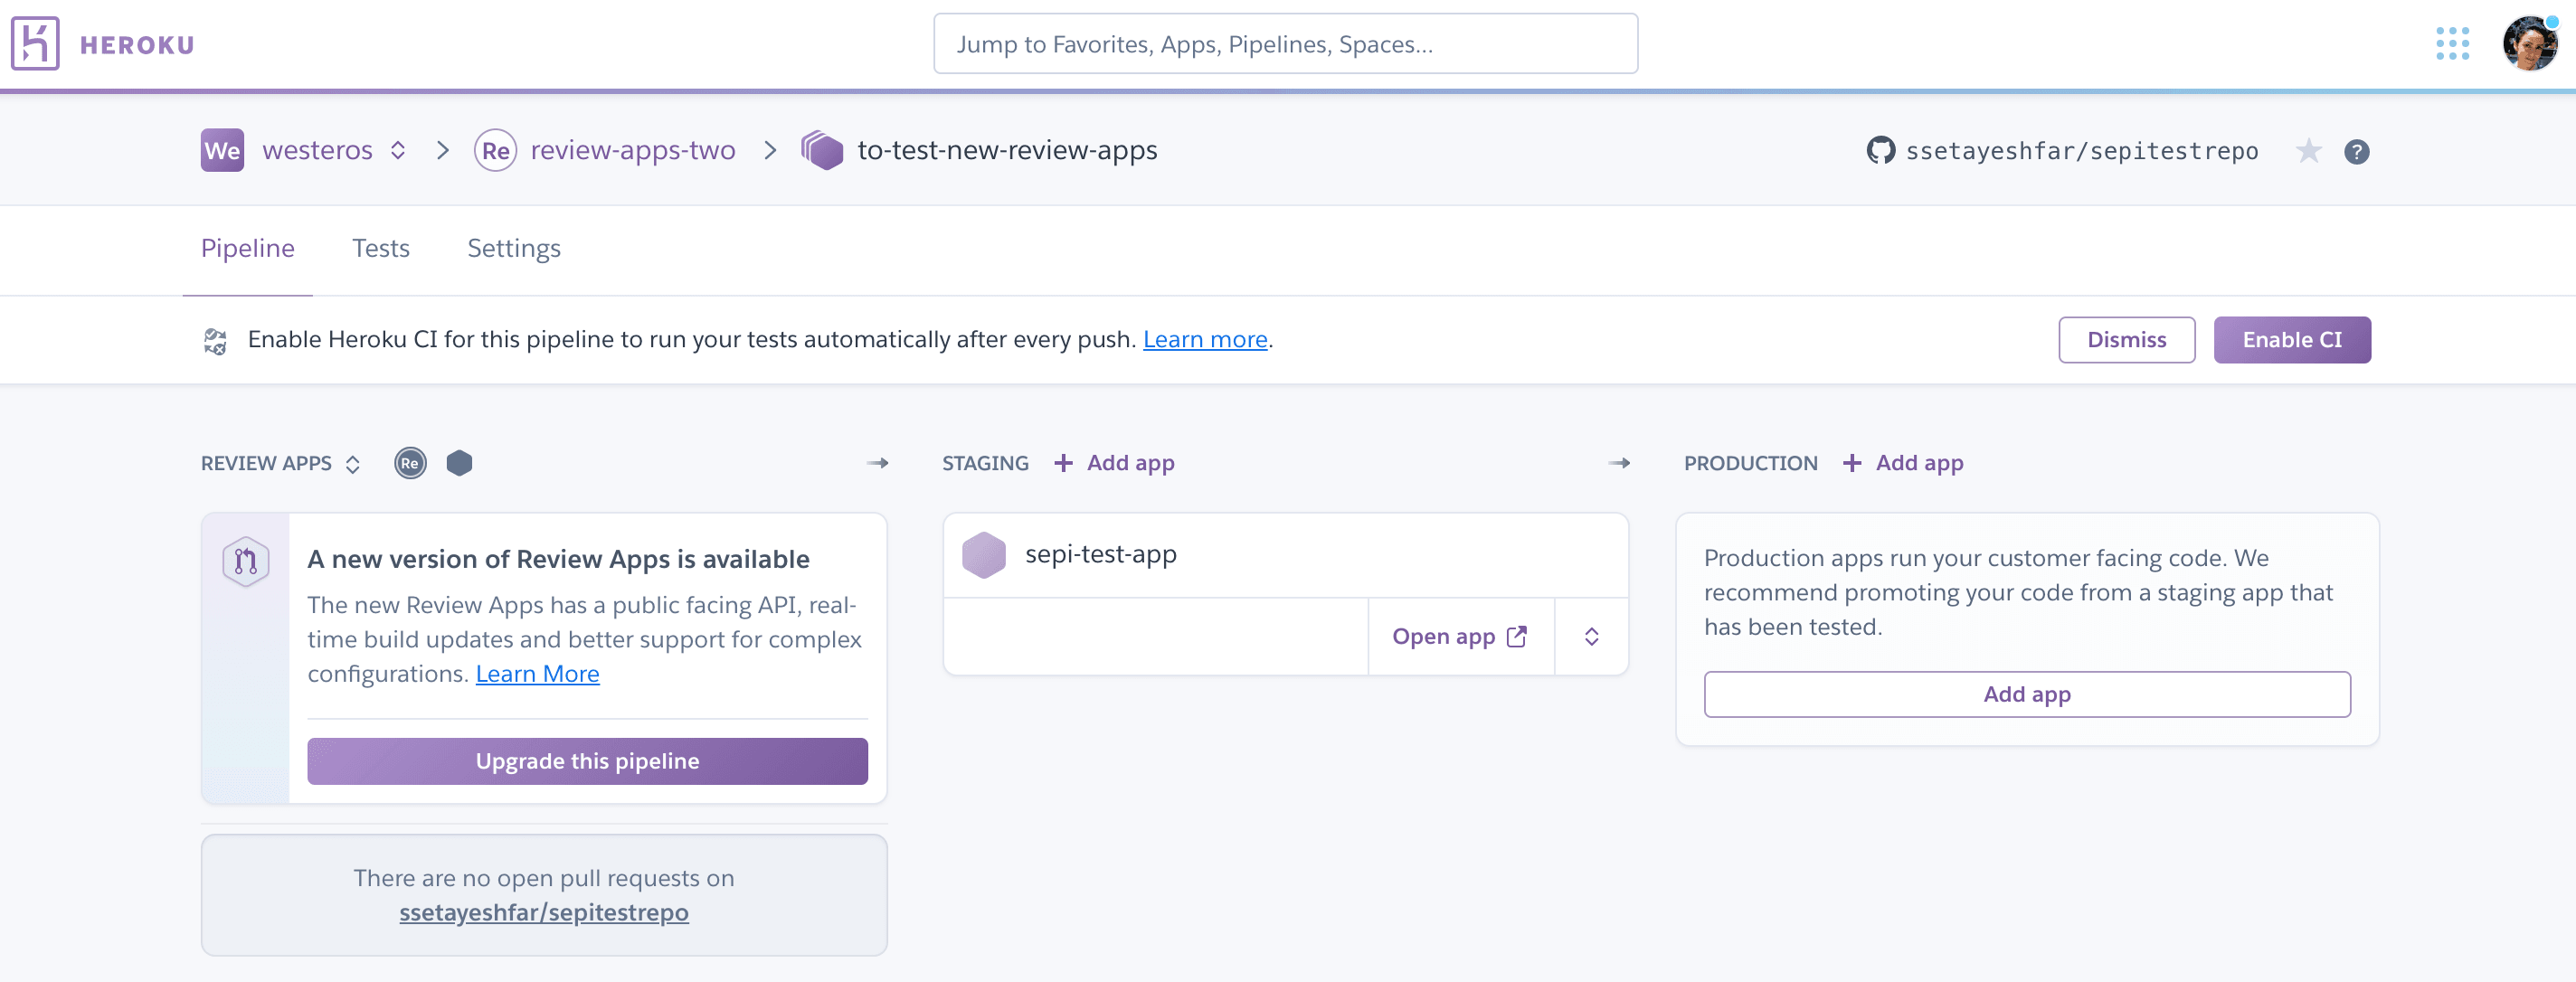 Enable New Review Apps